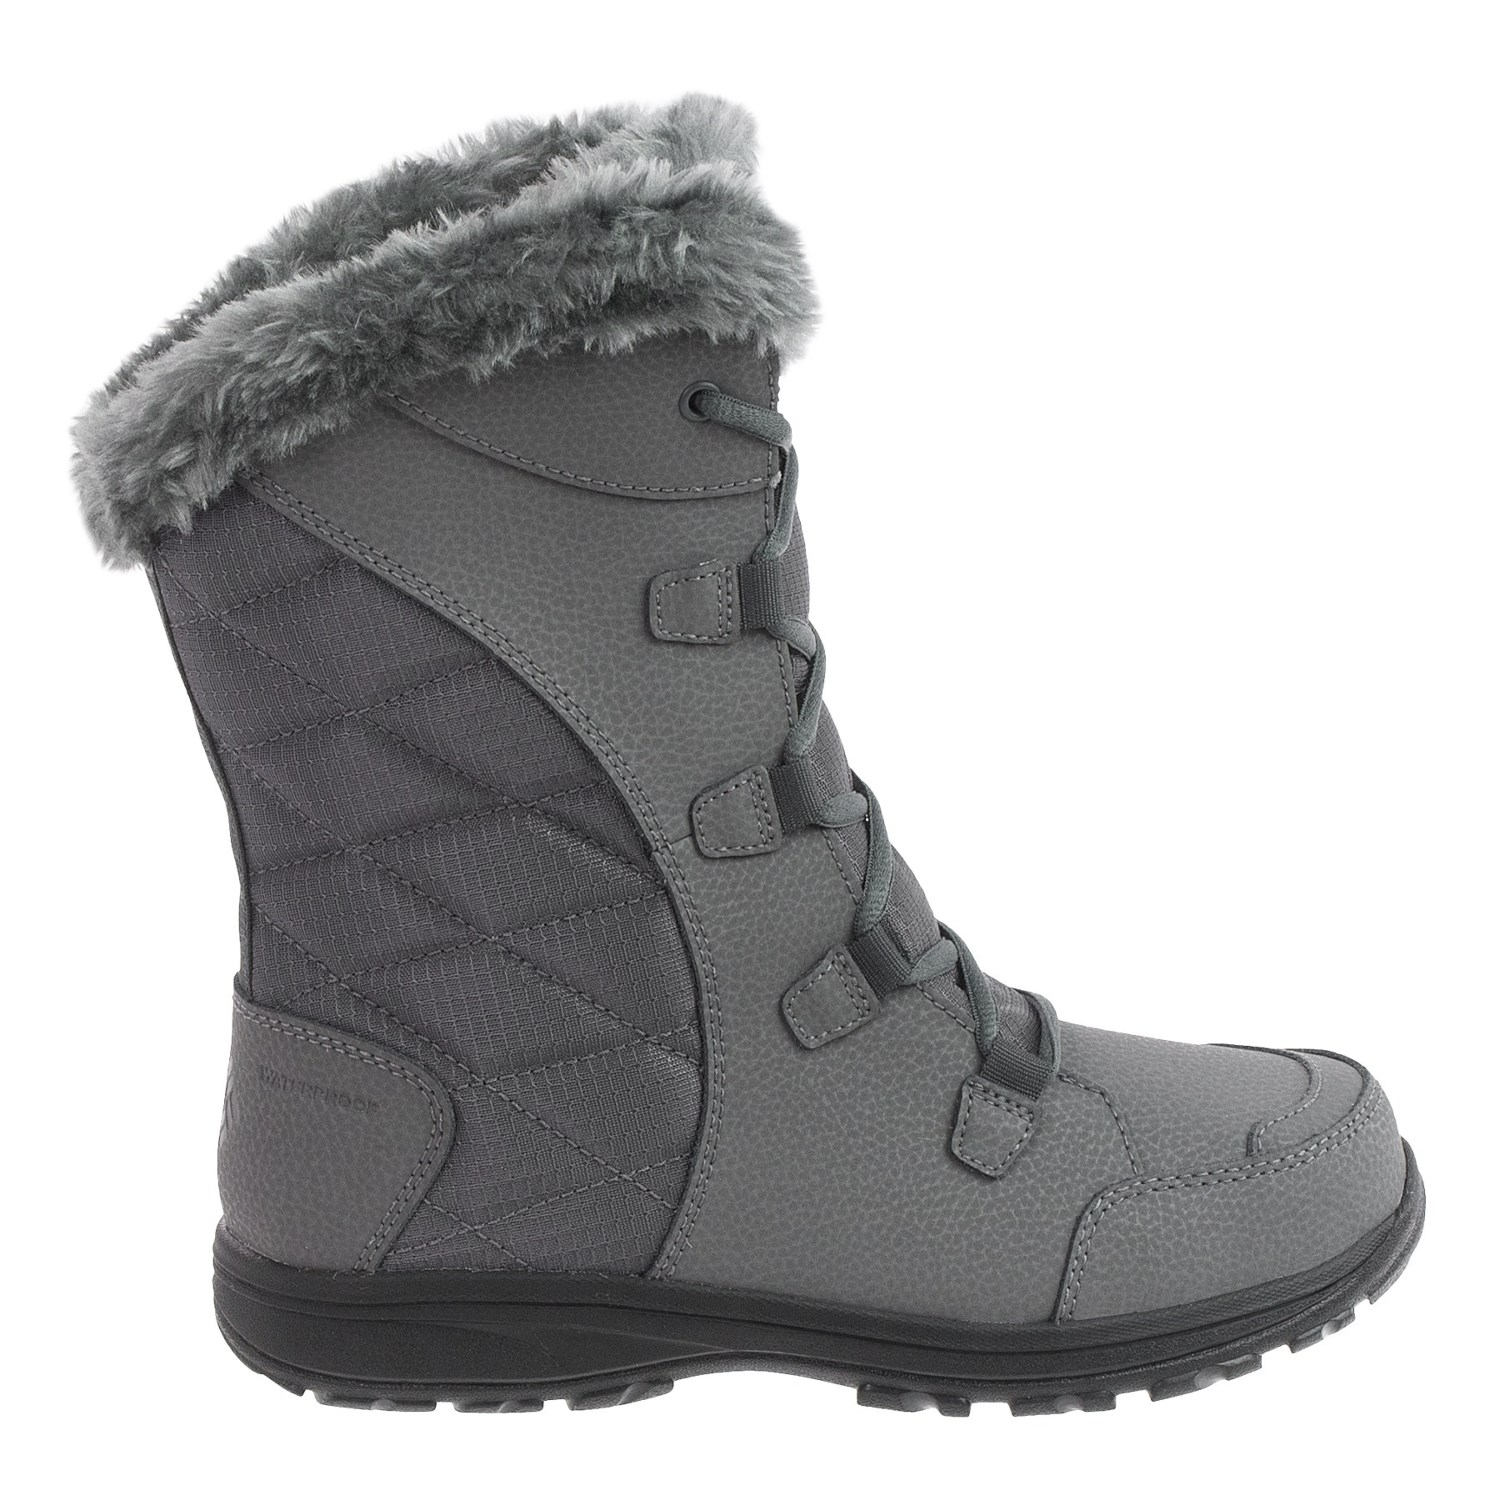 Columbia Women;s Snow Boots Clearance | Homewood Mountain Ski Resort